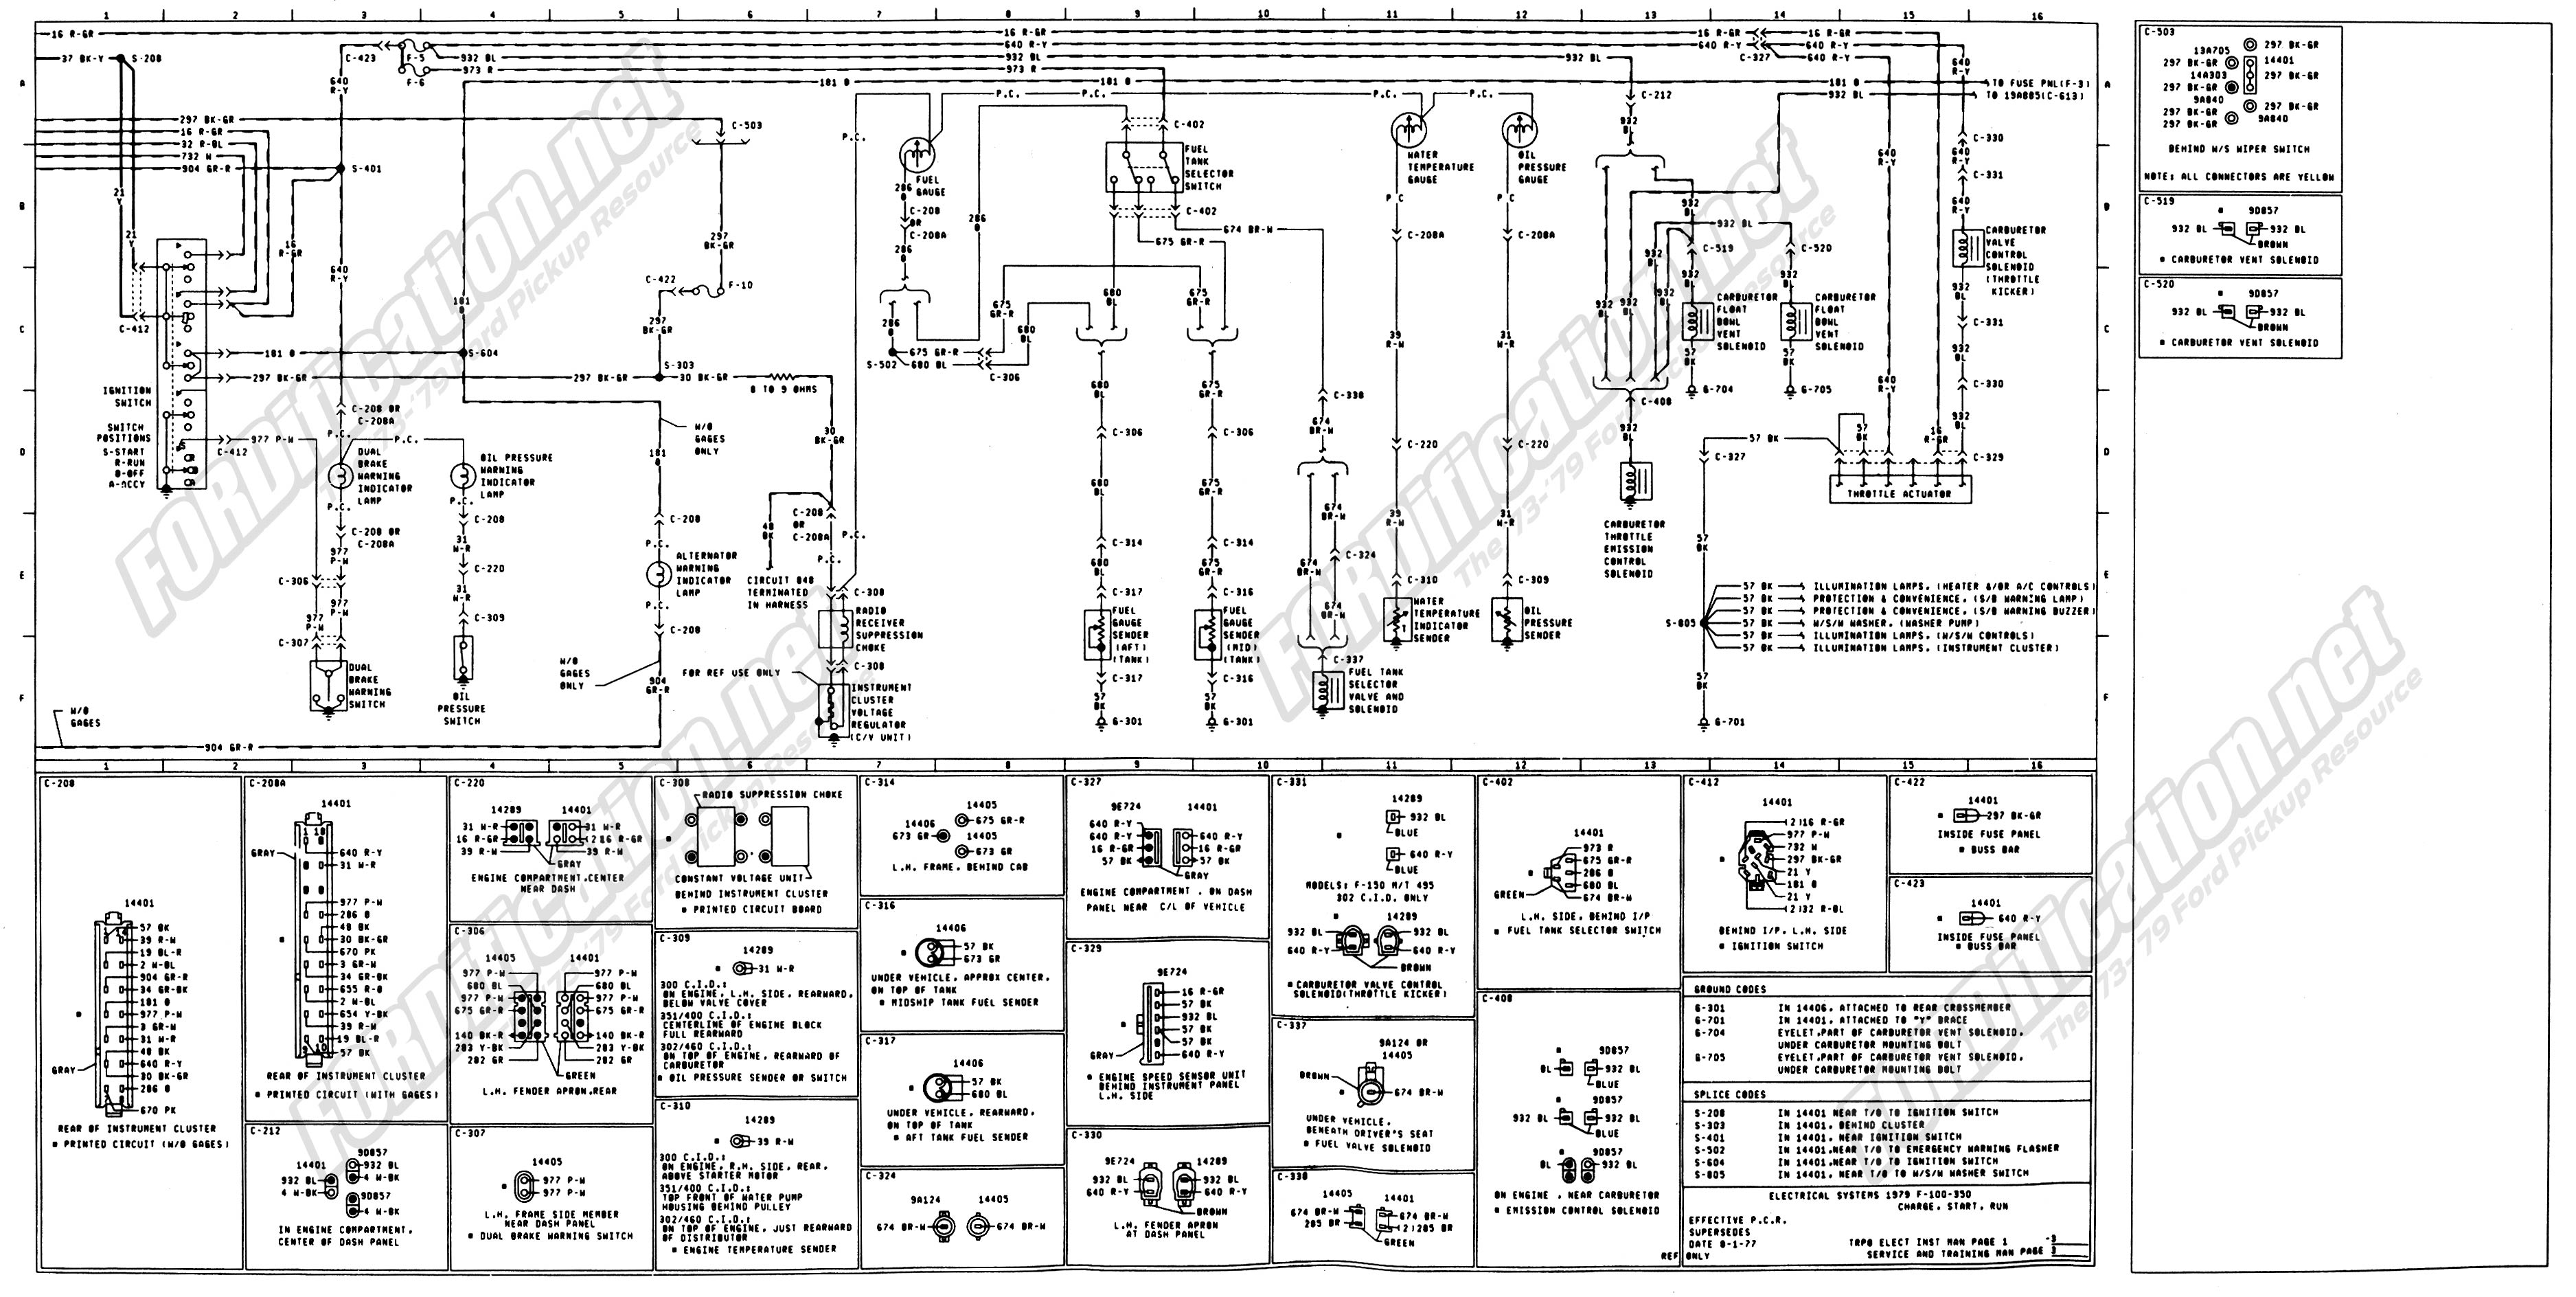 2003 Ford Escape Engine Diagram.html | Autos Post - photo#38